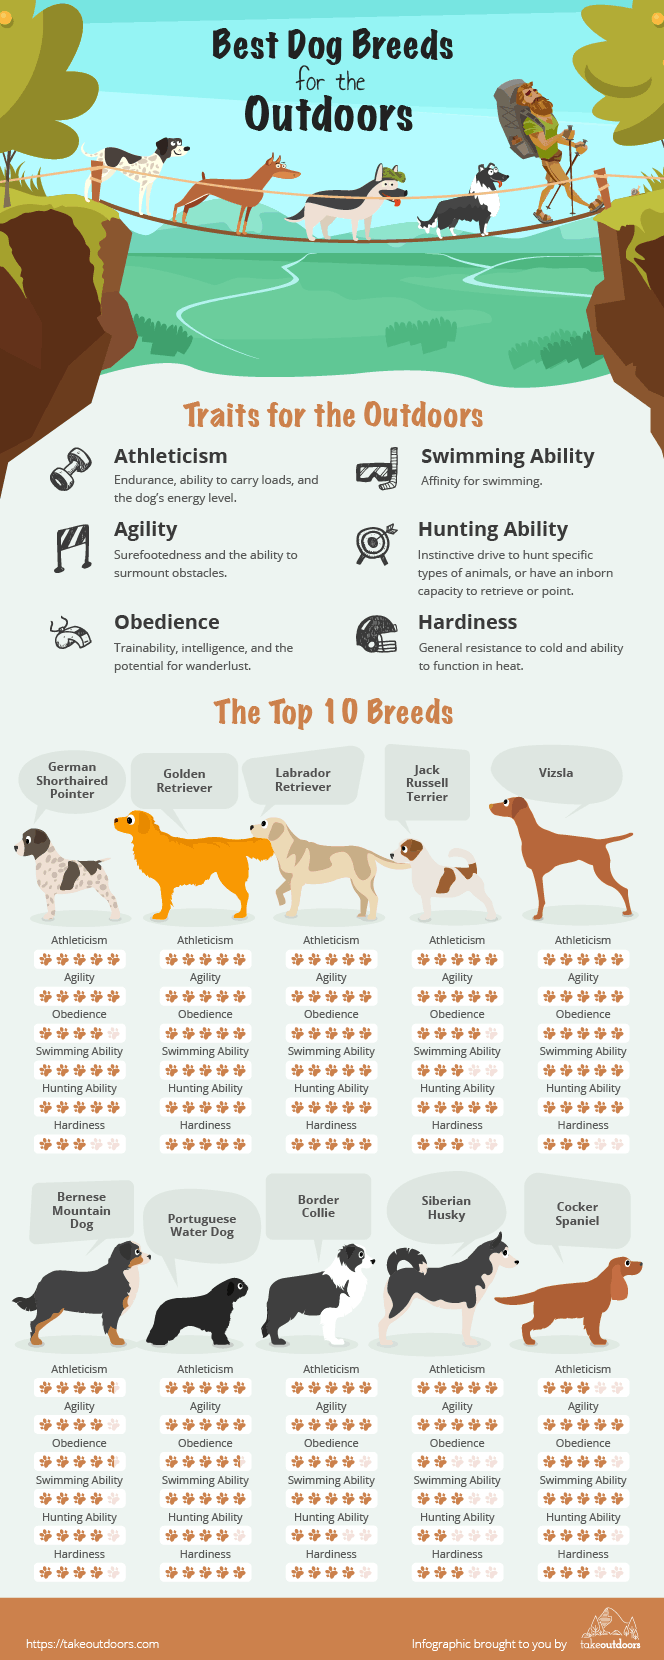 Infographic showing the traits of dogs suited for the outdoors and the top 10 breeds